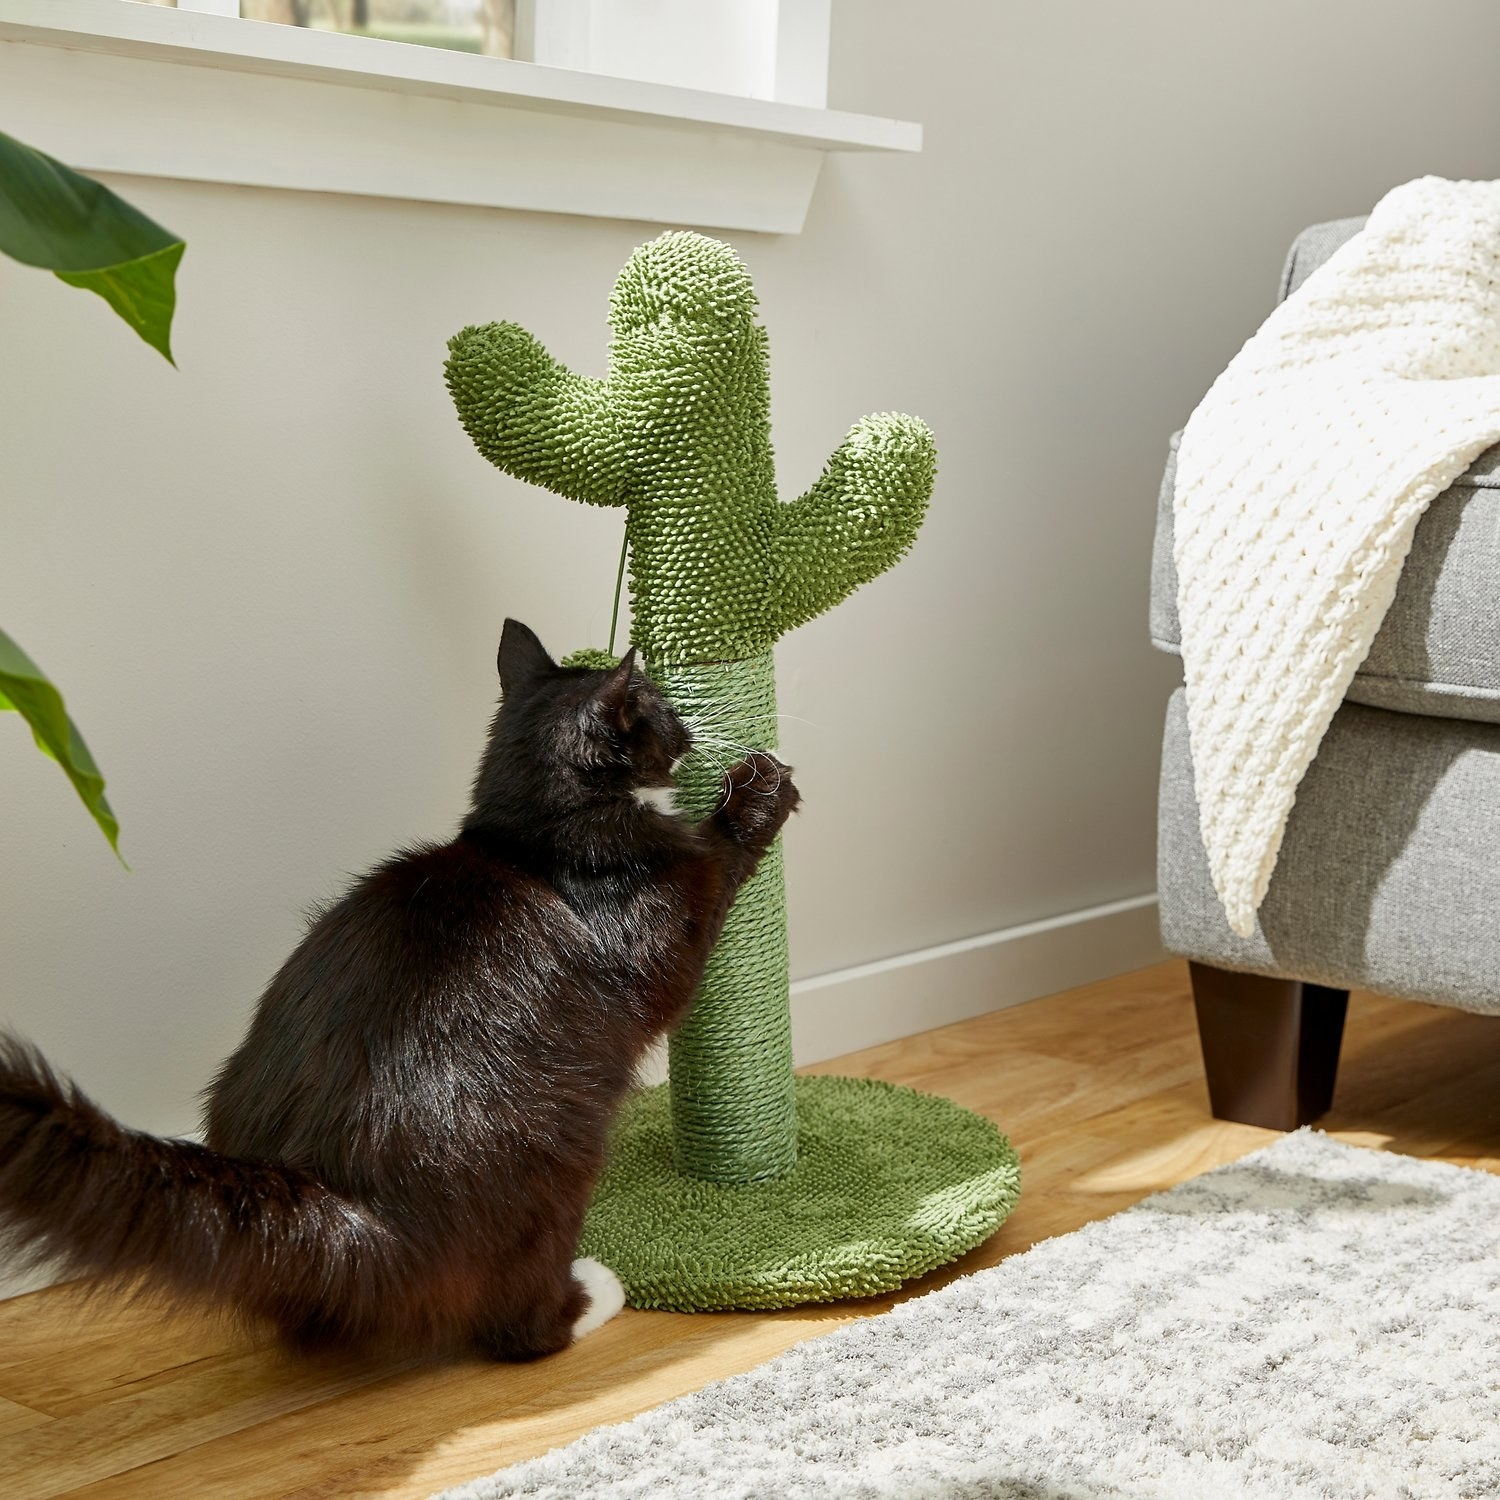 a cat playing with a cactus-shaped scratching toy